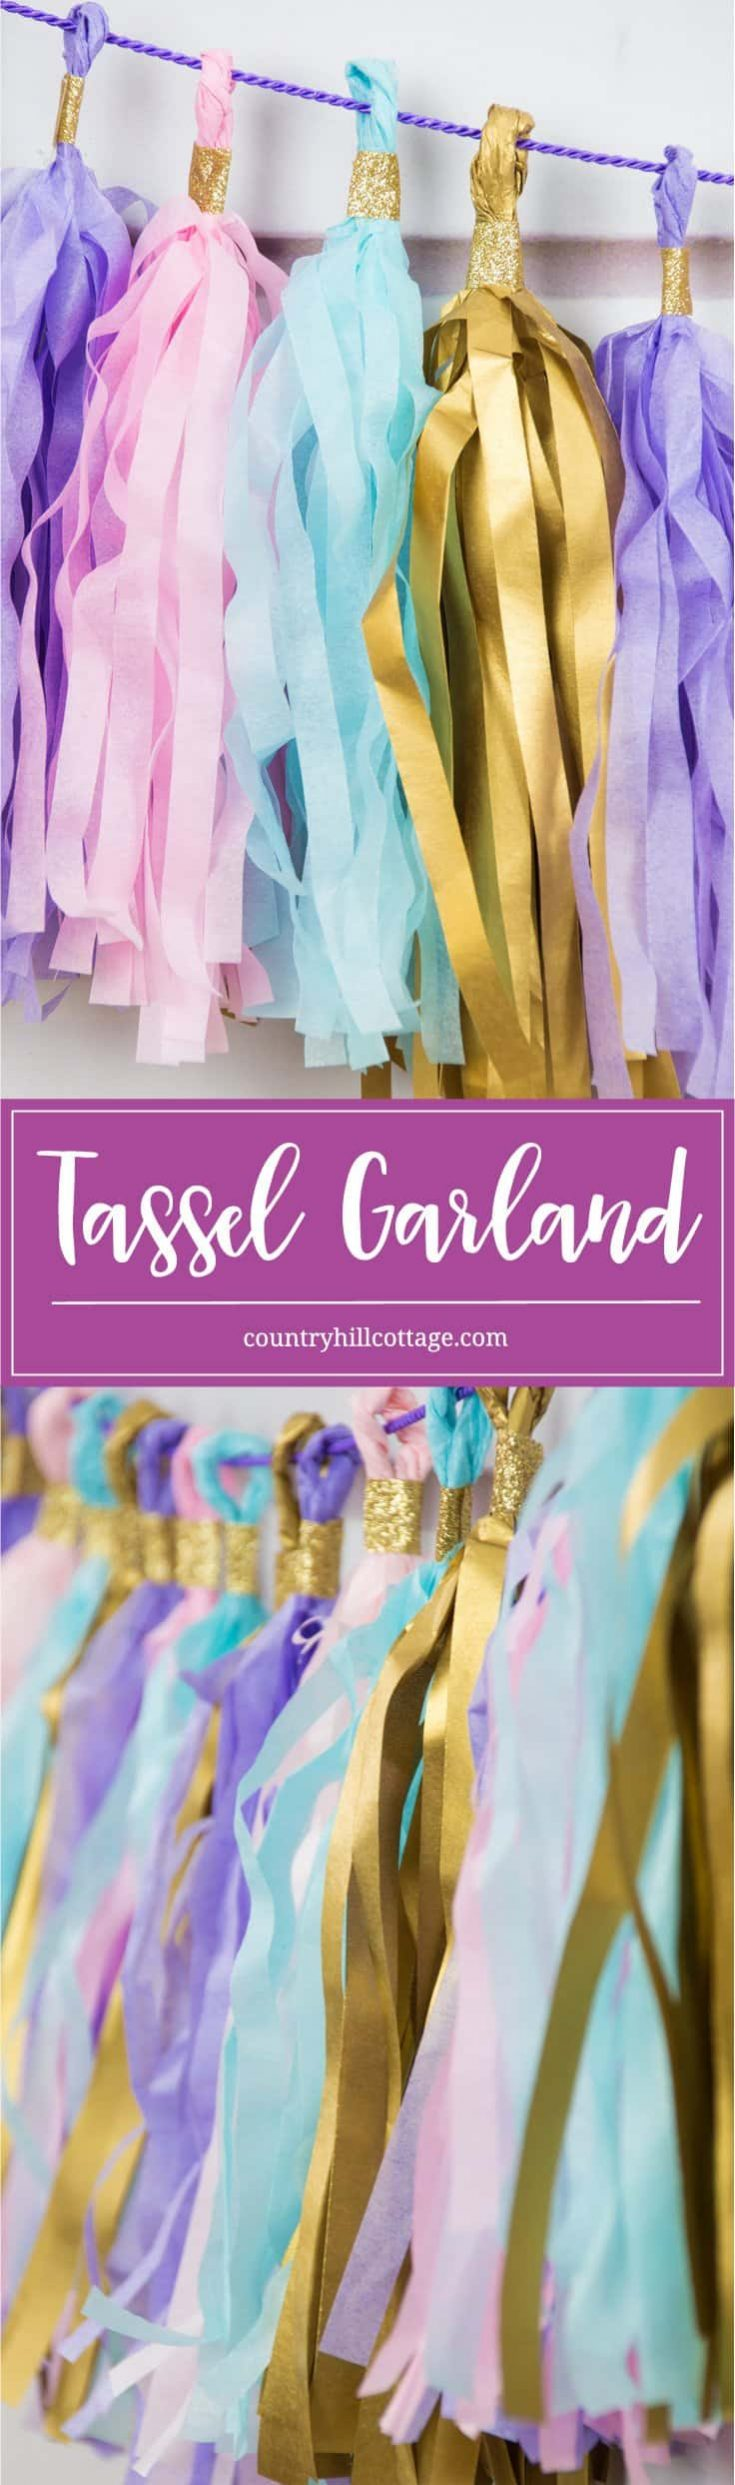 Tassel Garland Pretty Paper Decoration For Party And Weddings